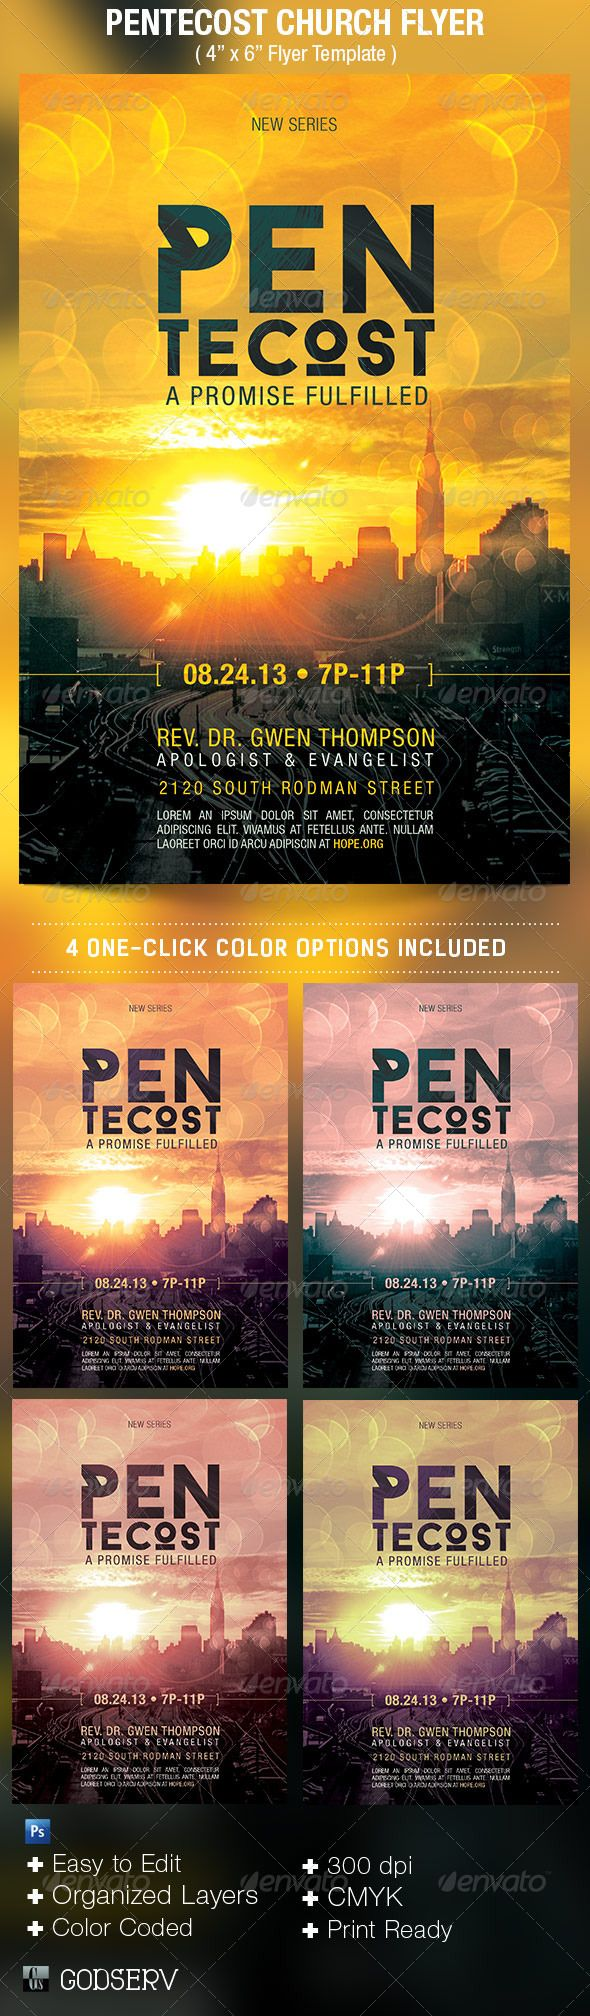 images about christian design flyer template pentecost church flyer template